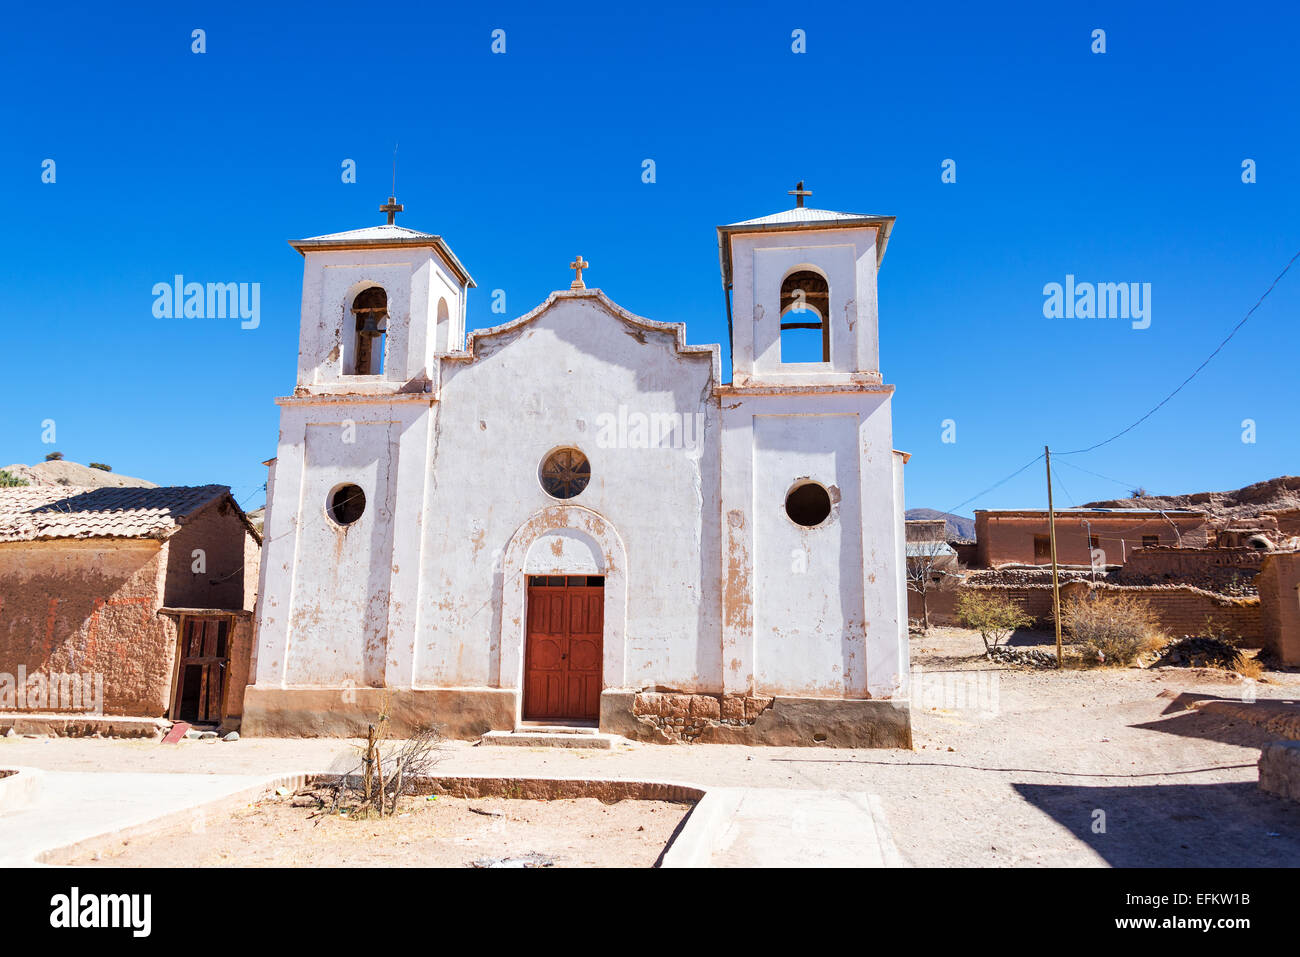 White old historic church in the small town of Chacopampa near Tupiza, Bolivia Stock Photo